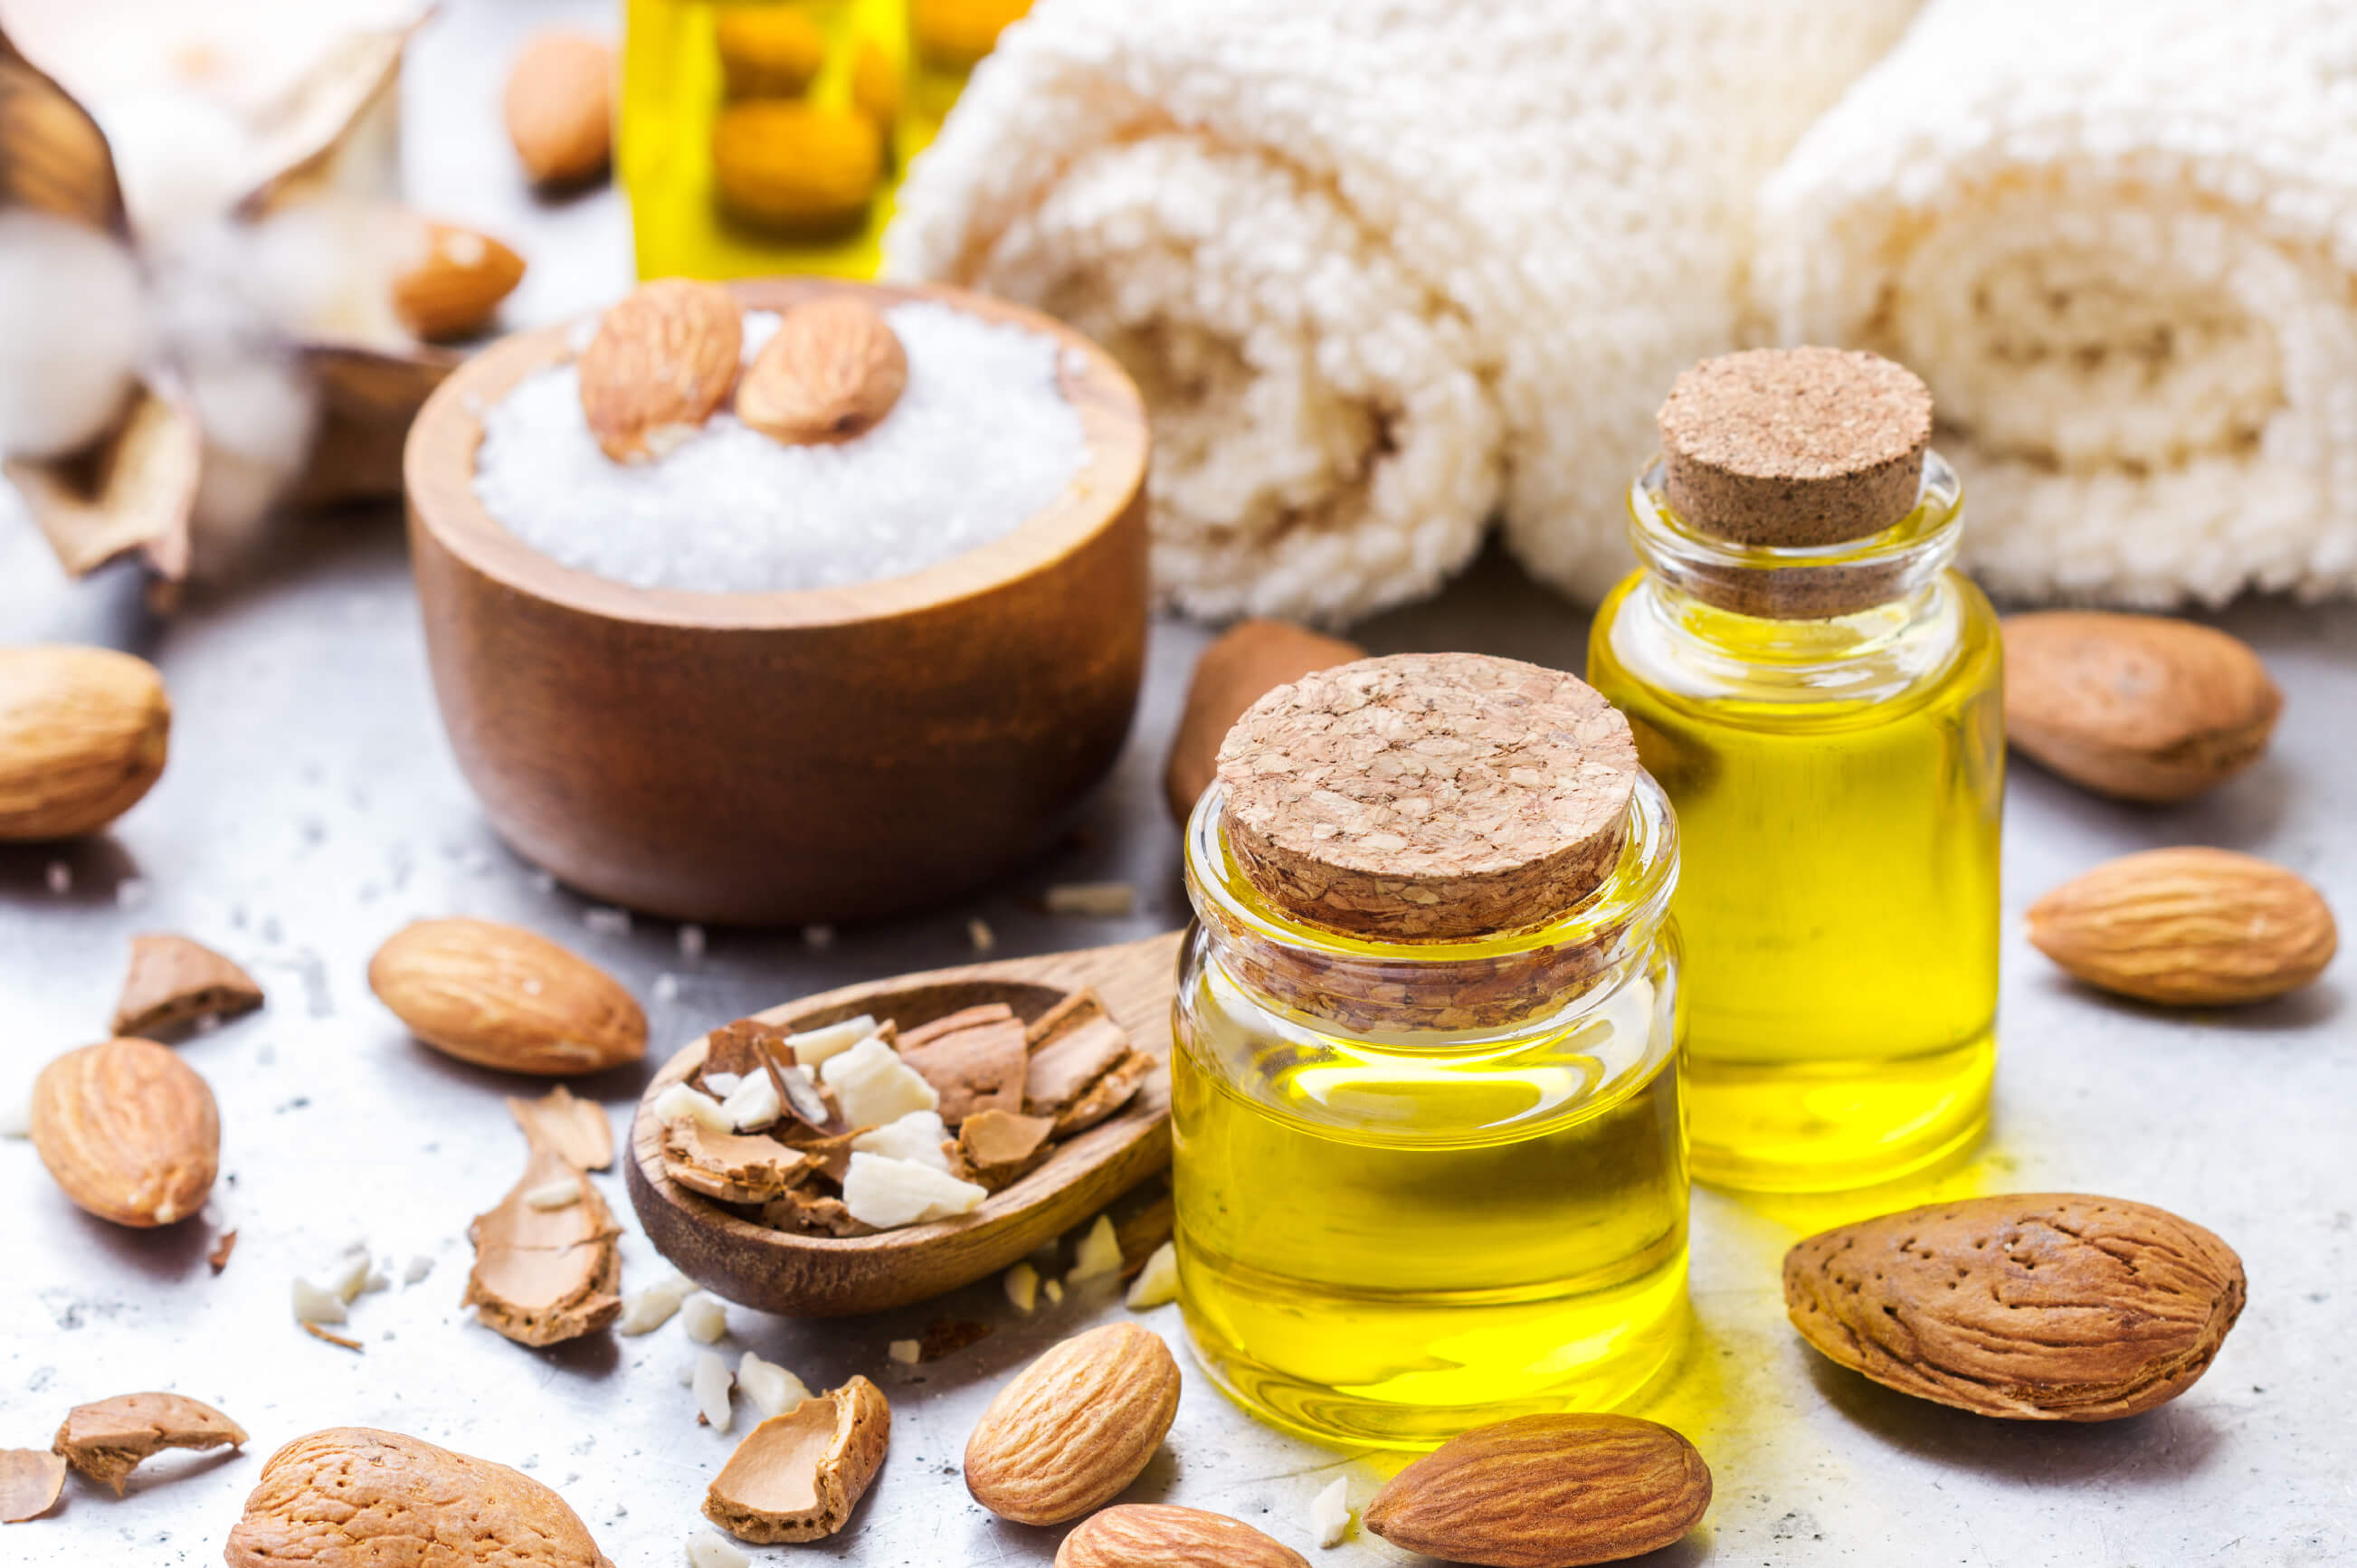 Two small jars of almond oil surrounded by loose almonds